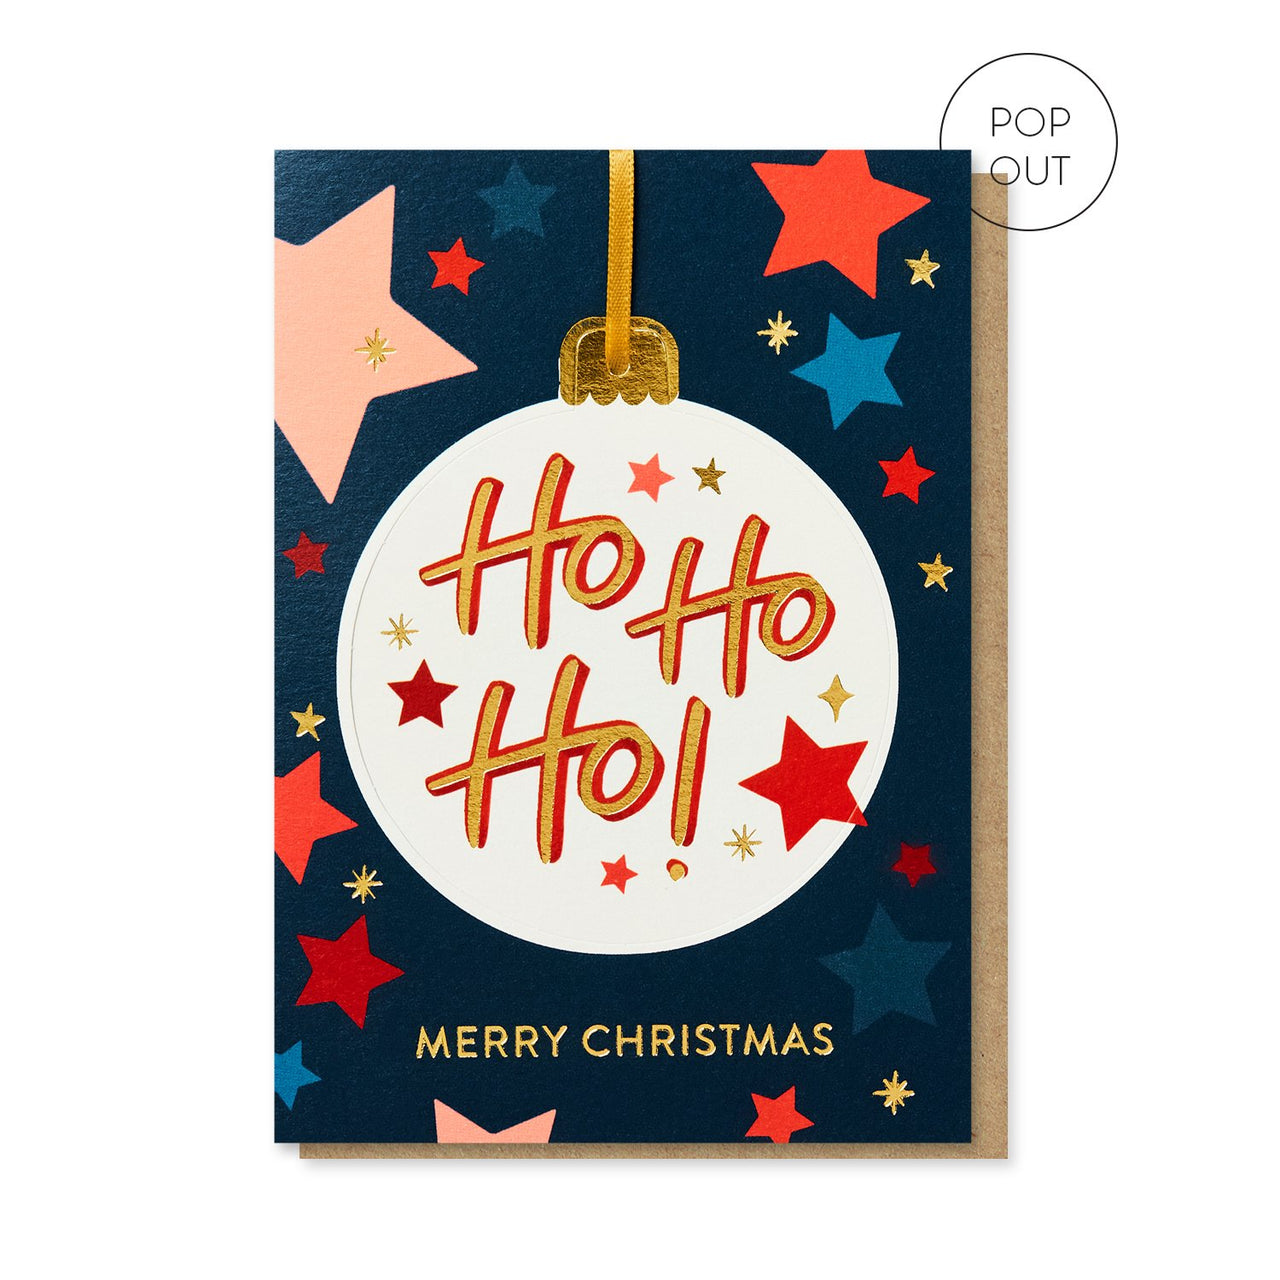 Ho Ho Ho Bauble Christmas card by Stormy Knight